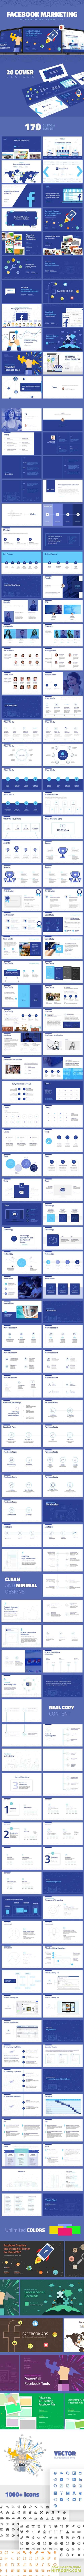 Facebook Marketing Presentation 20700410